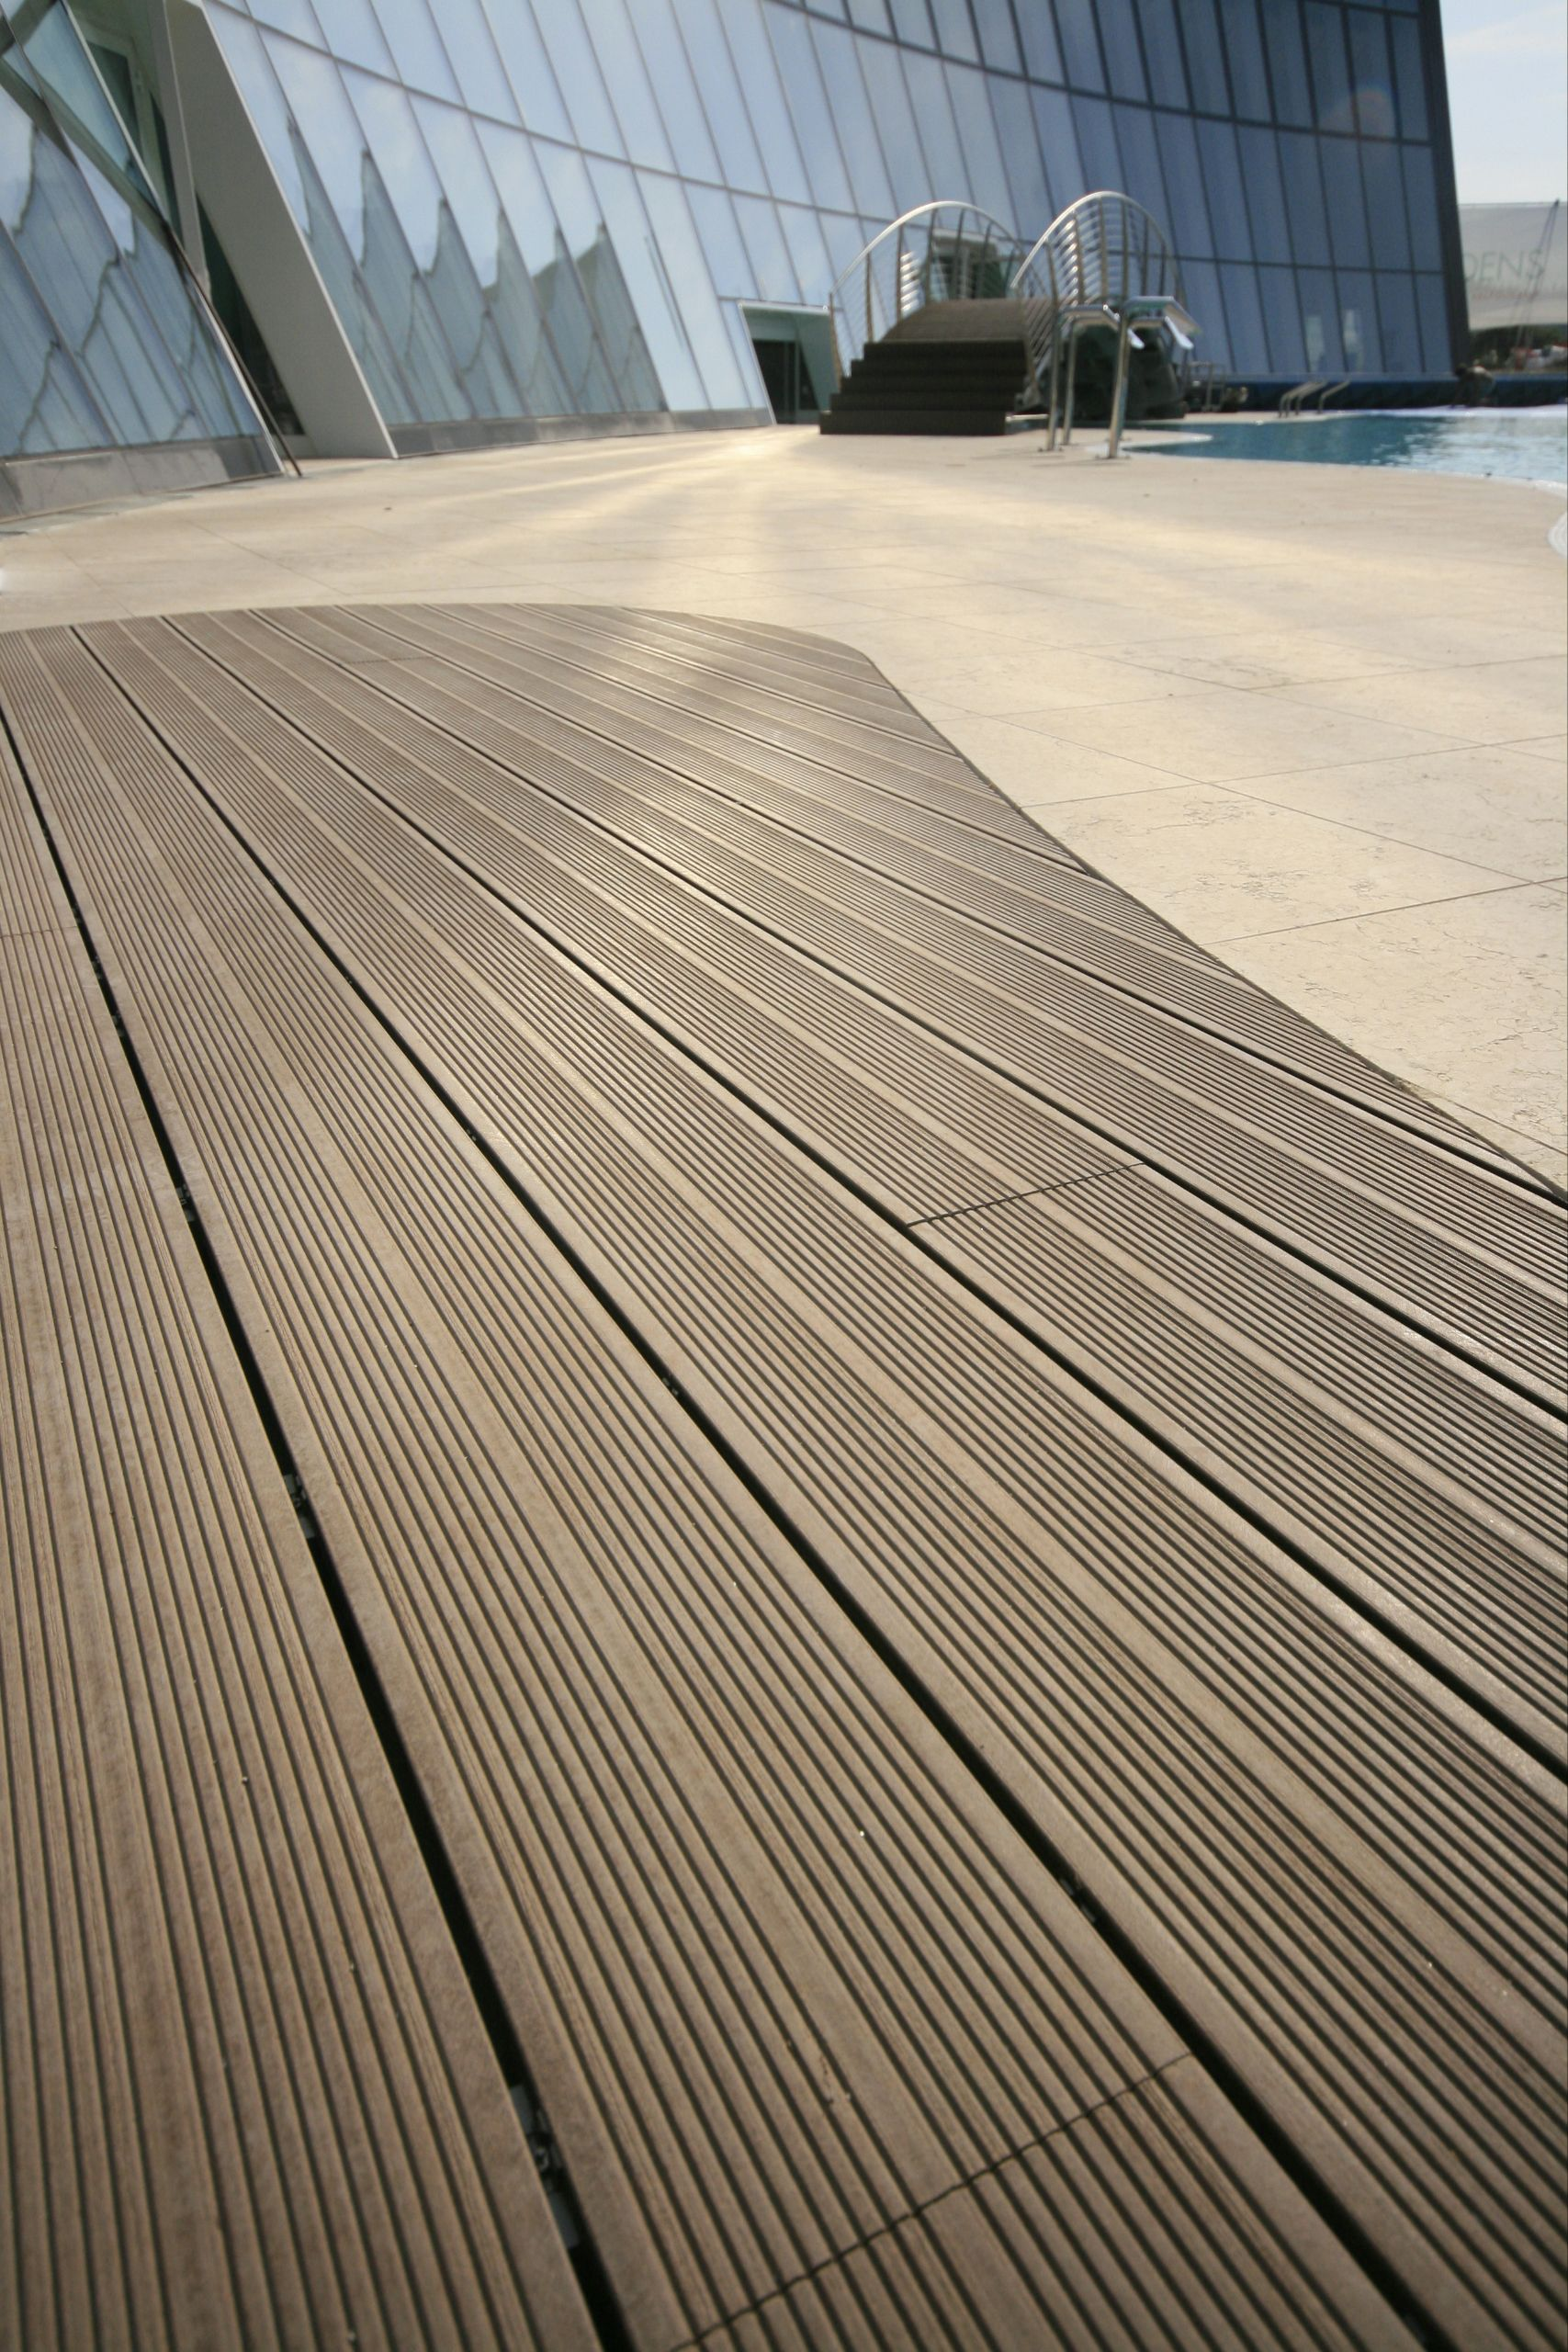 Flooring For A Summer House Mixing Composite Decking And Wood Contemporary Wood Decking For Sale Wpc Decking Wood Deck Designs Wood Plastic Composite